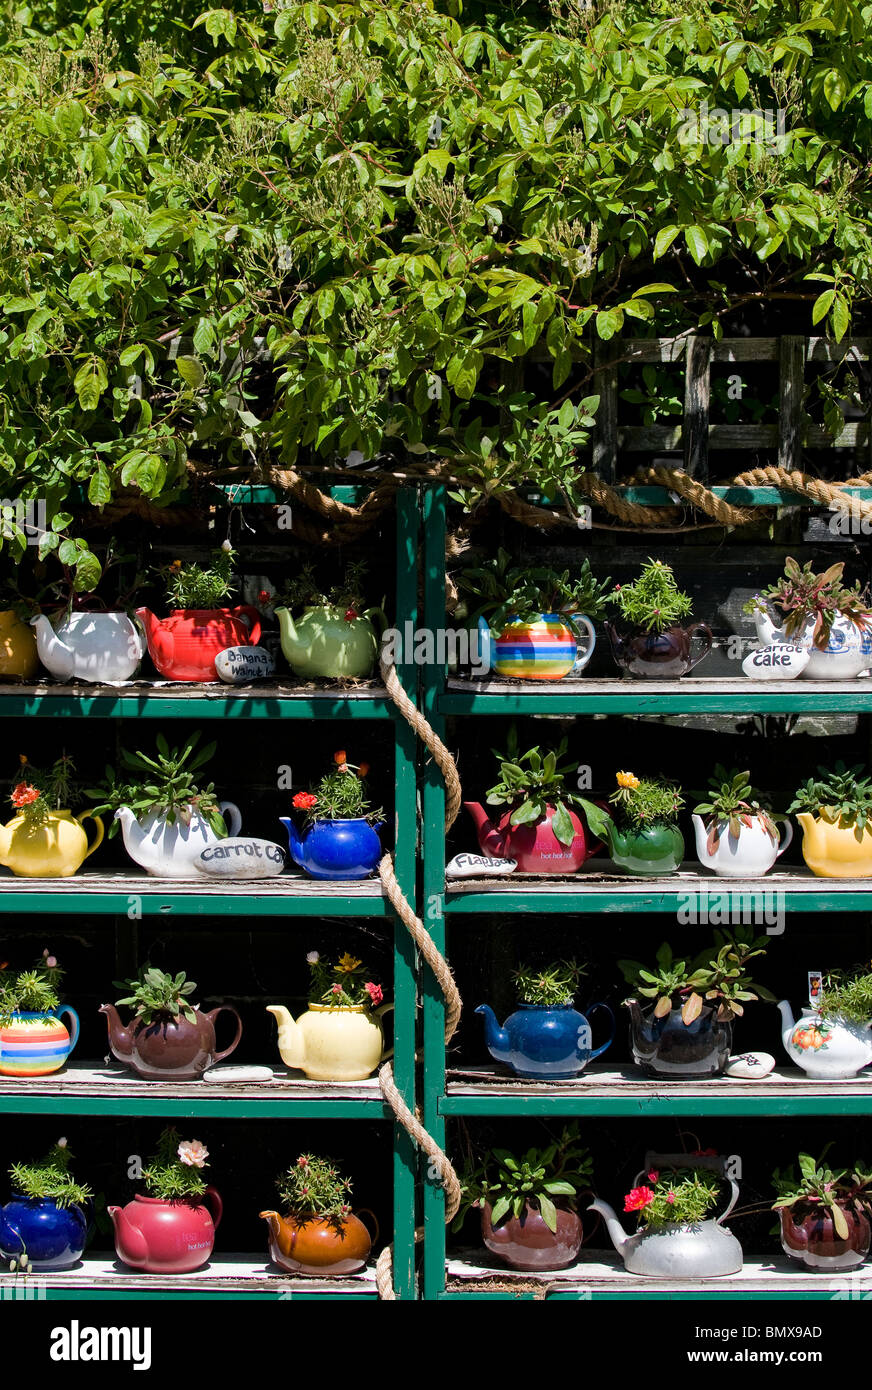 Shelves containing colourful teapots with plants in Thorpeness in Suffolk.  Photo by Gordon Scammell - Stock Image